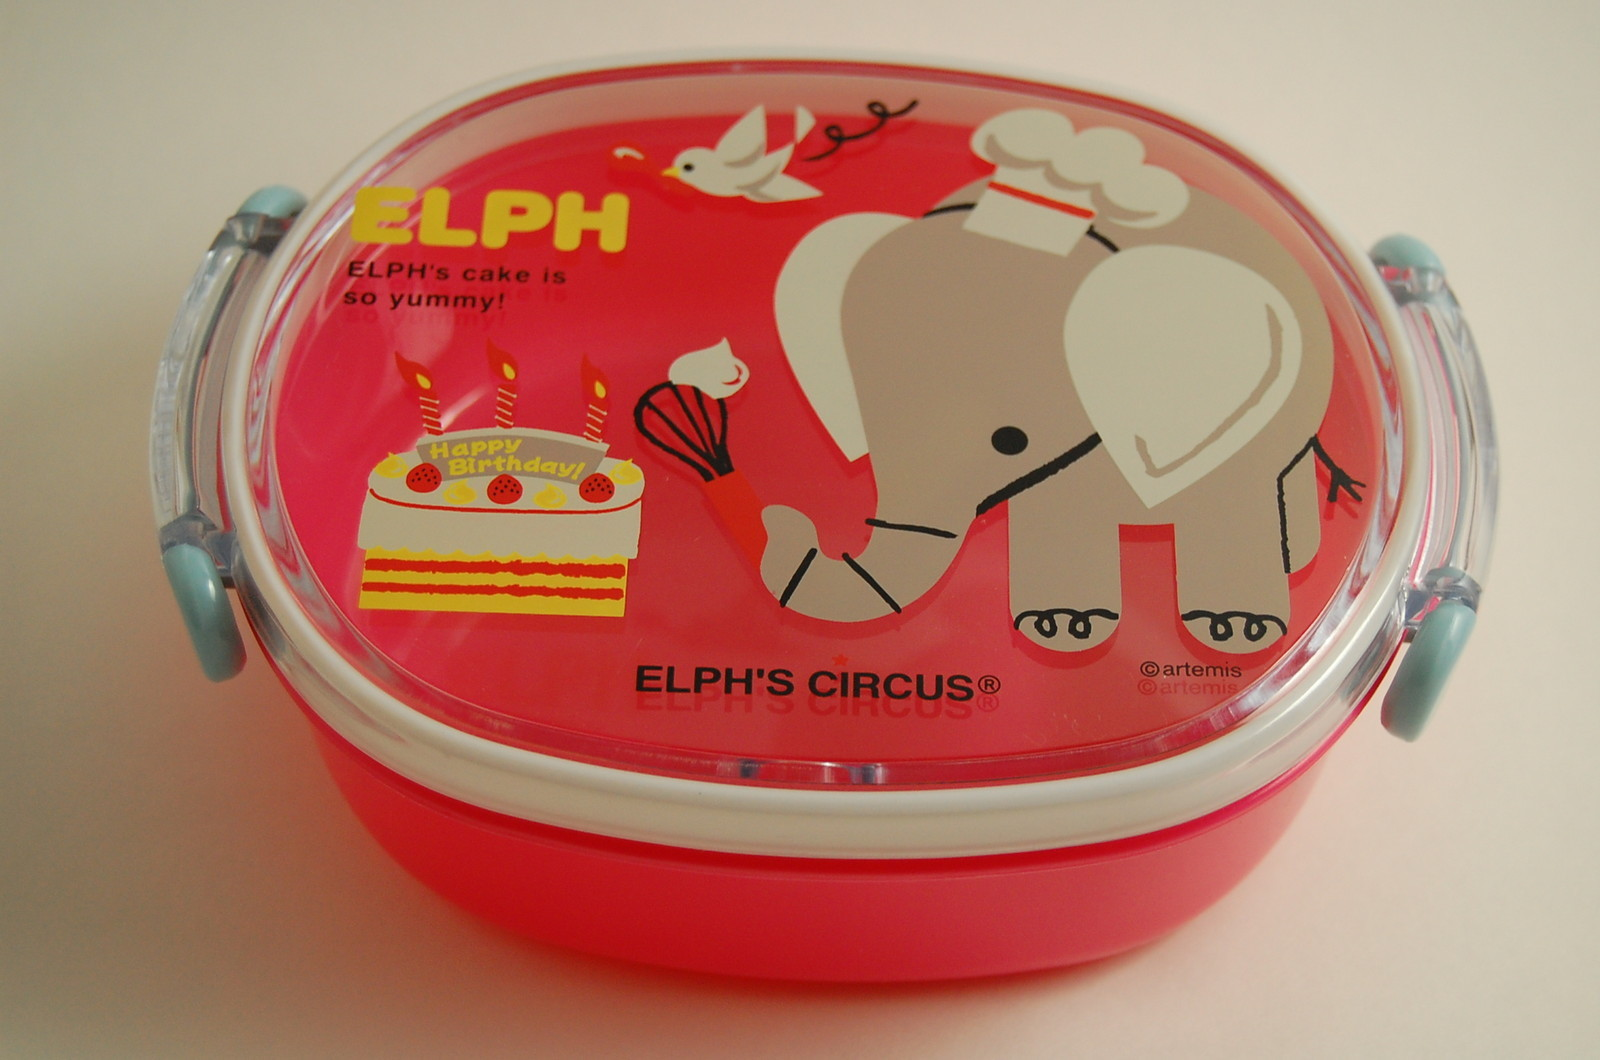 japanese lunch bento box elph 39 s circus elph cake free shipping thelittlebow online. Black Bedroom Furniture Sets. Home Design Ideas